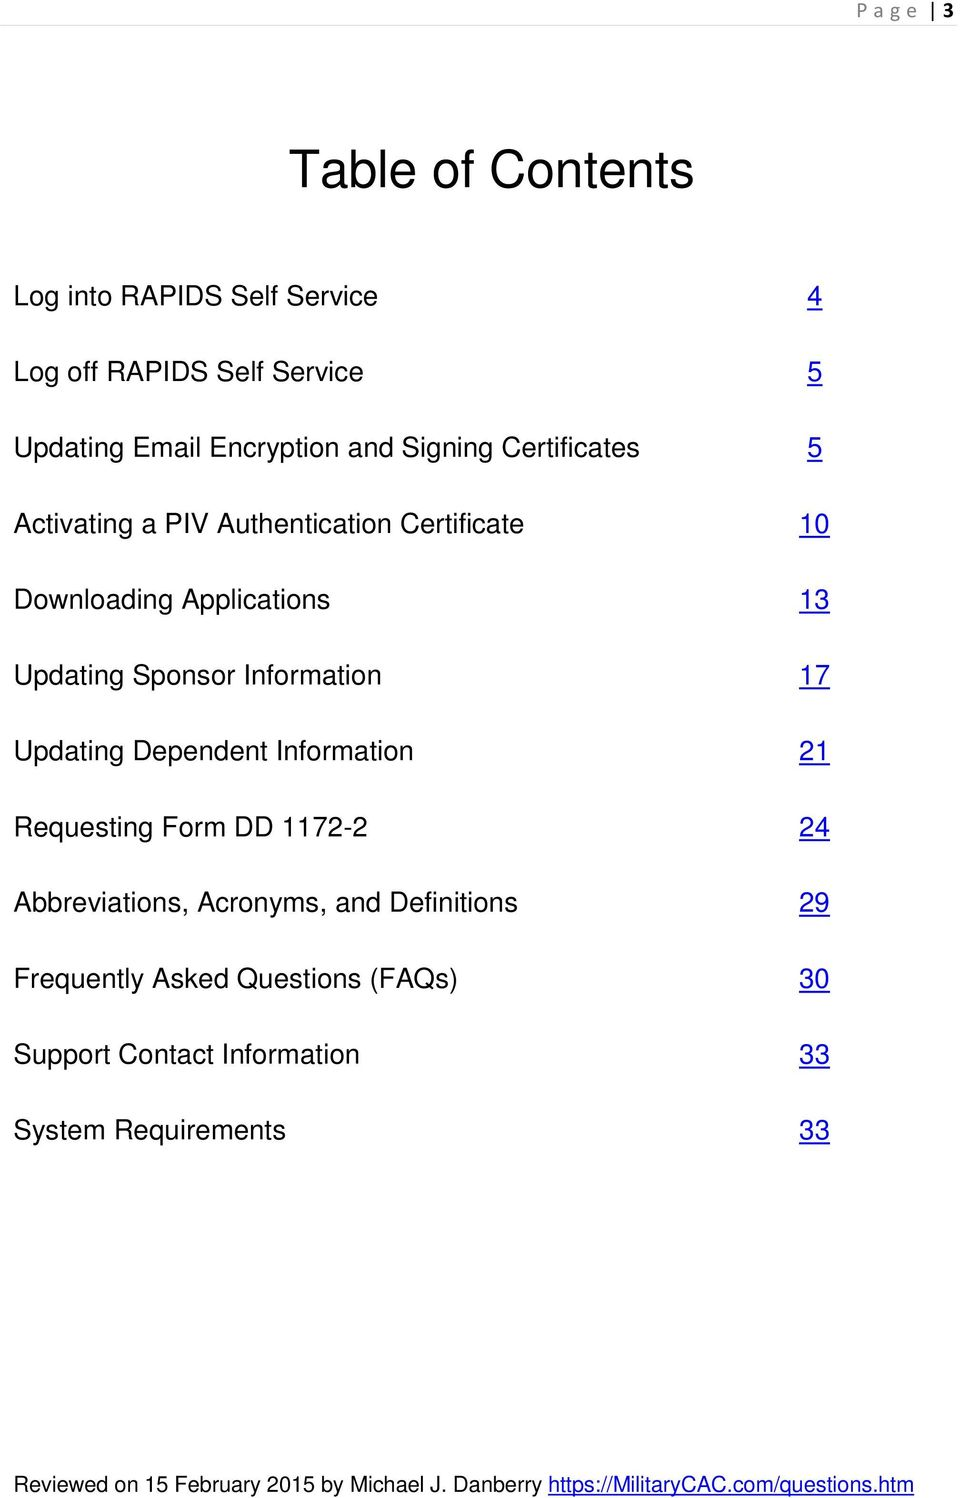 RAPIDS Self Service User Guide - PDF